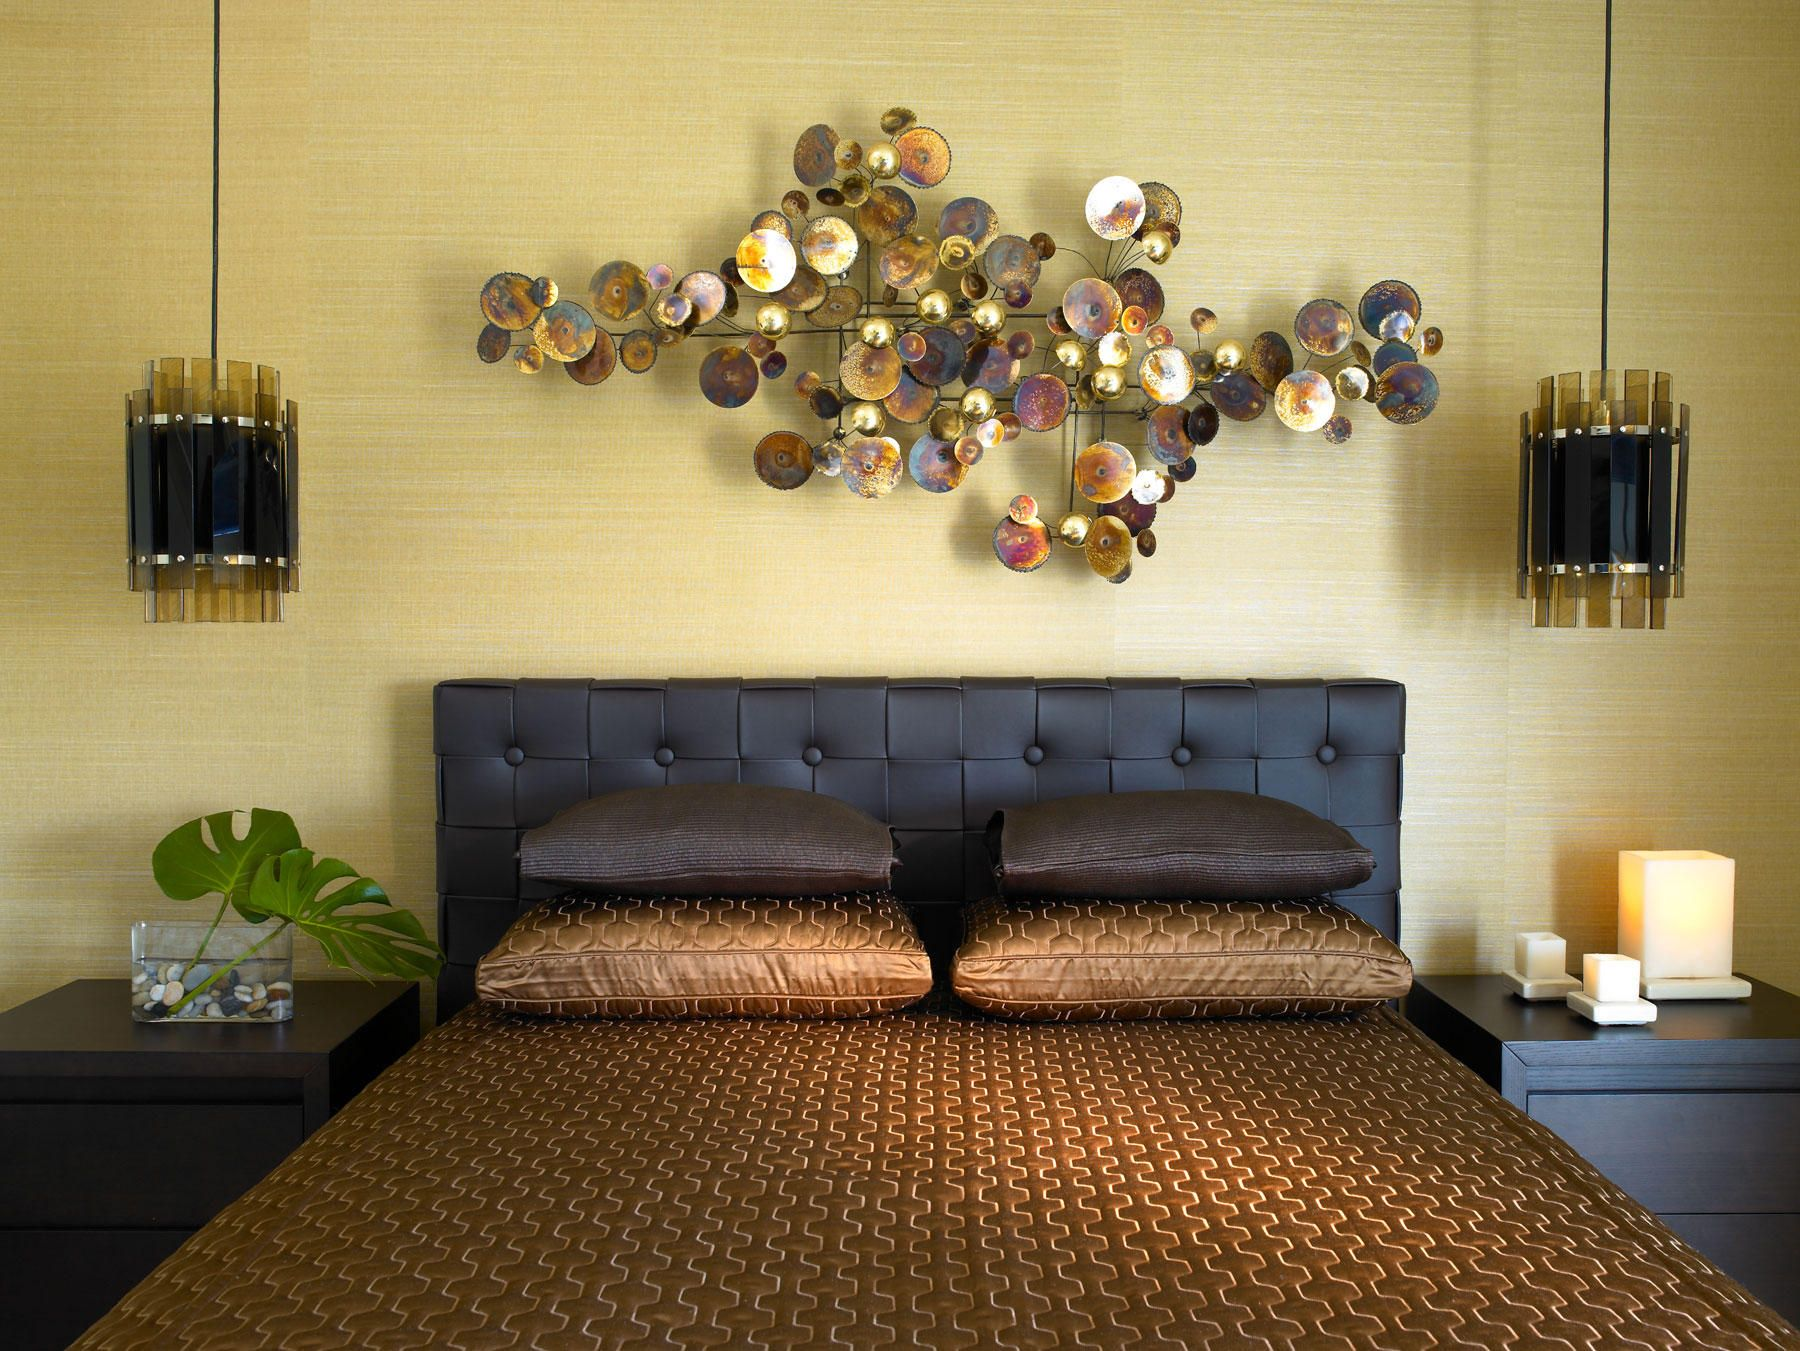 Elegant Pictures Of Homemade Wall Decoration Ideas for Bedroom ...